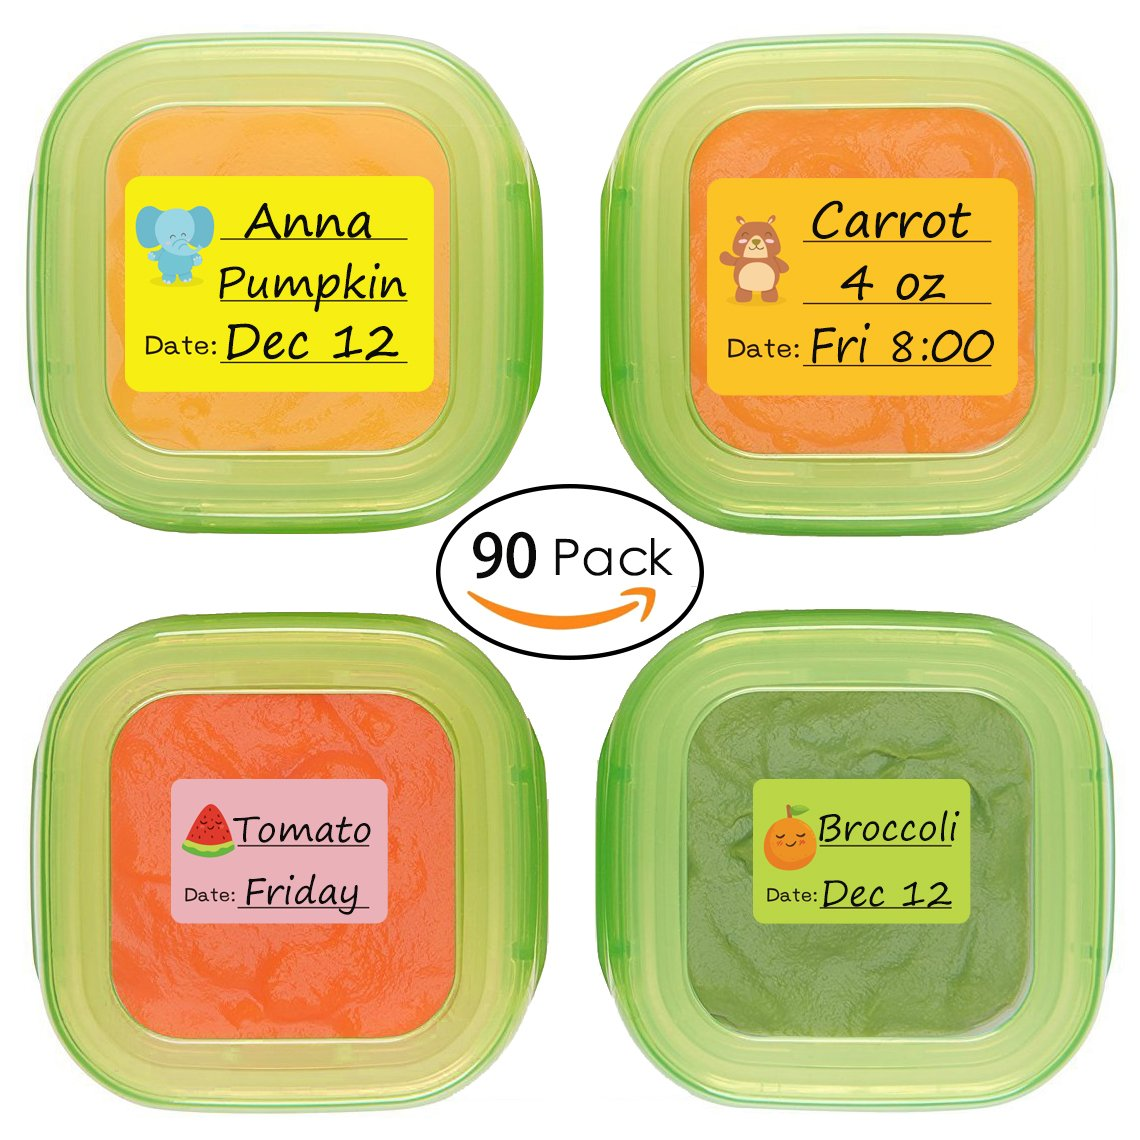 Baby Date Labels, Removable Write-On Labels for OXO Food Storage Containers & Baby Bottles, Great for Daycare, Pack of 90